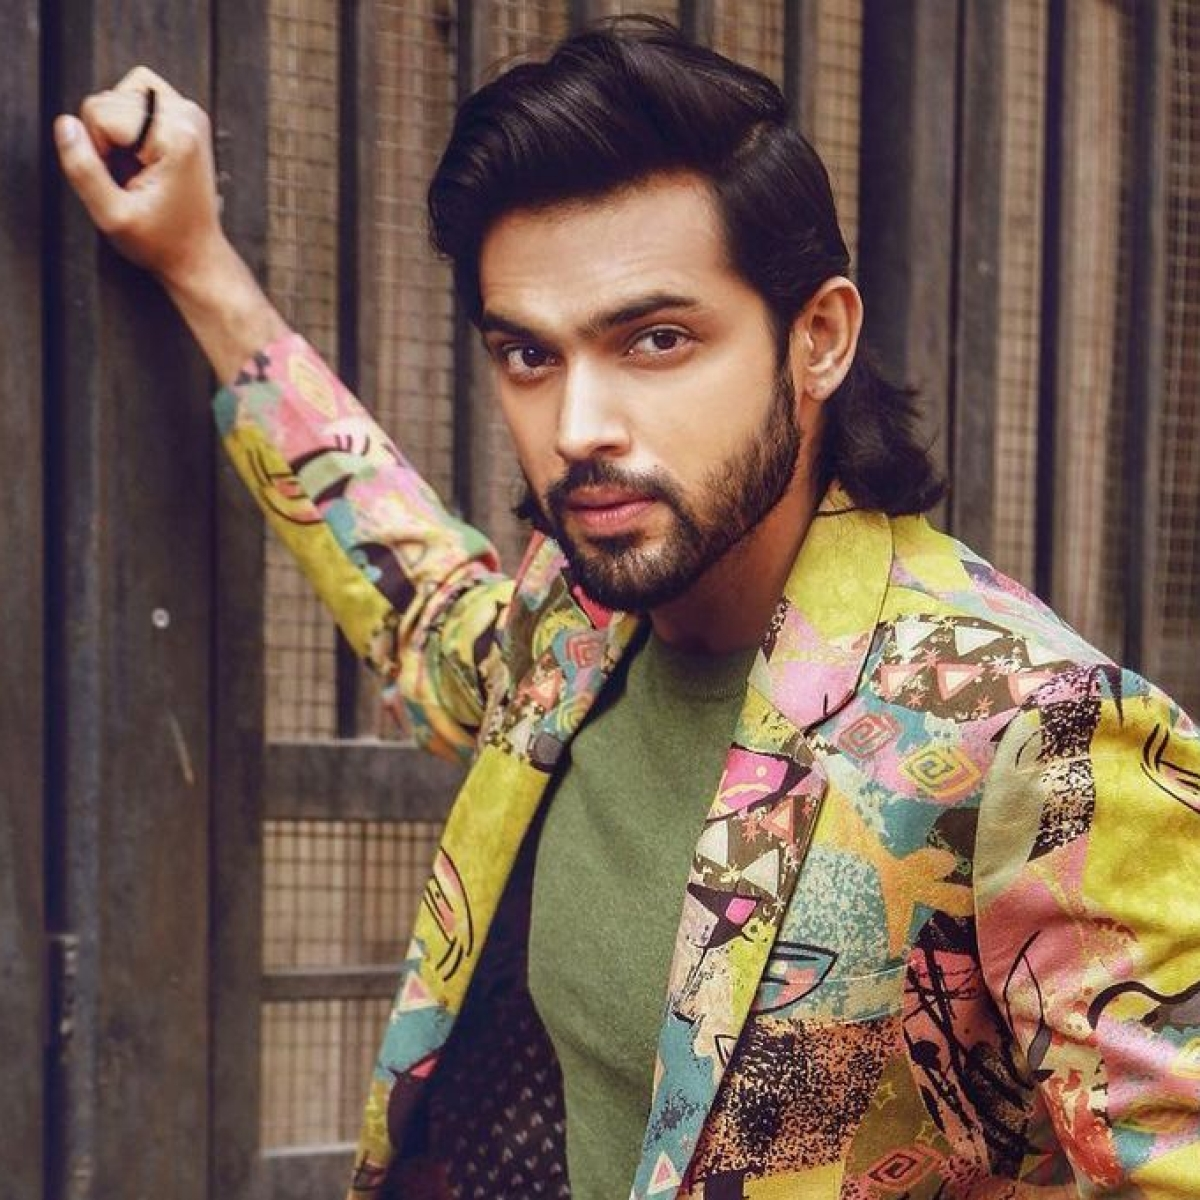 'Single' Parth Samthaan feels like being in a relationship because of COVID-19 crisis